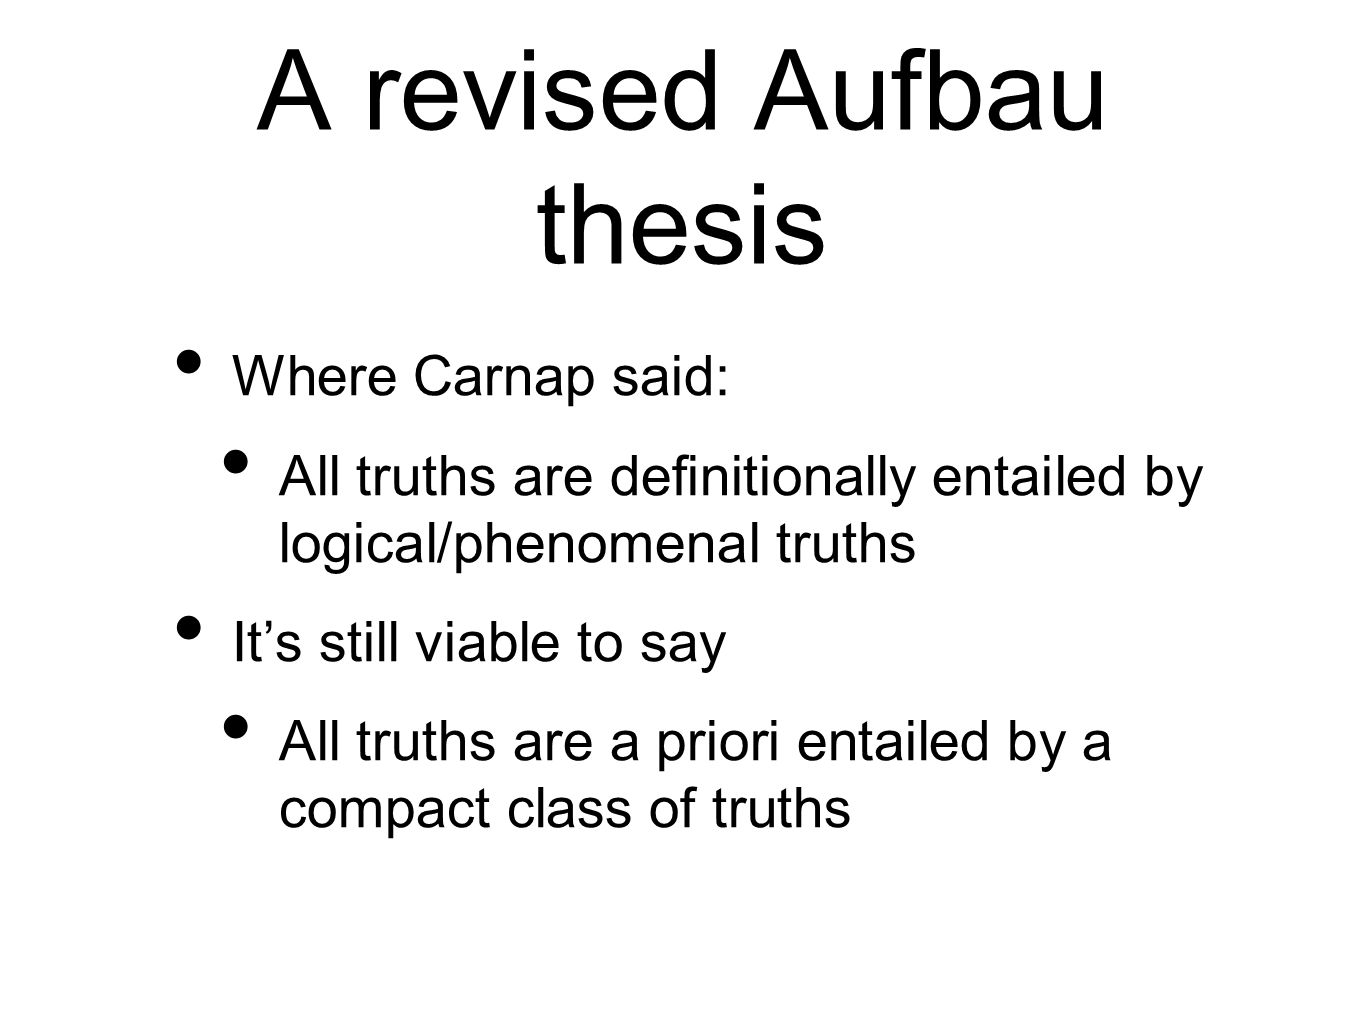 A revised Aufbau thesis